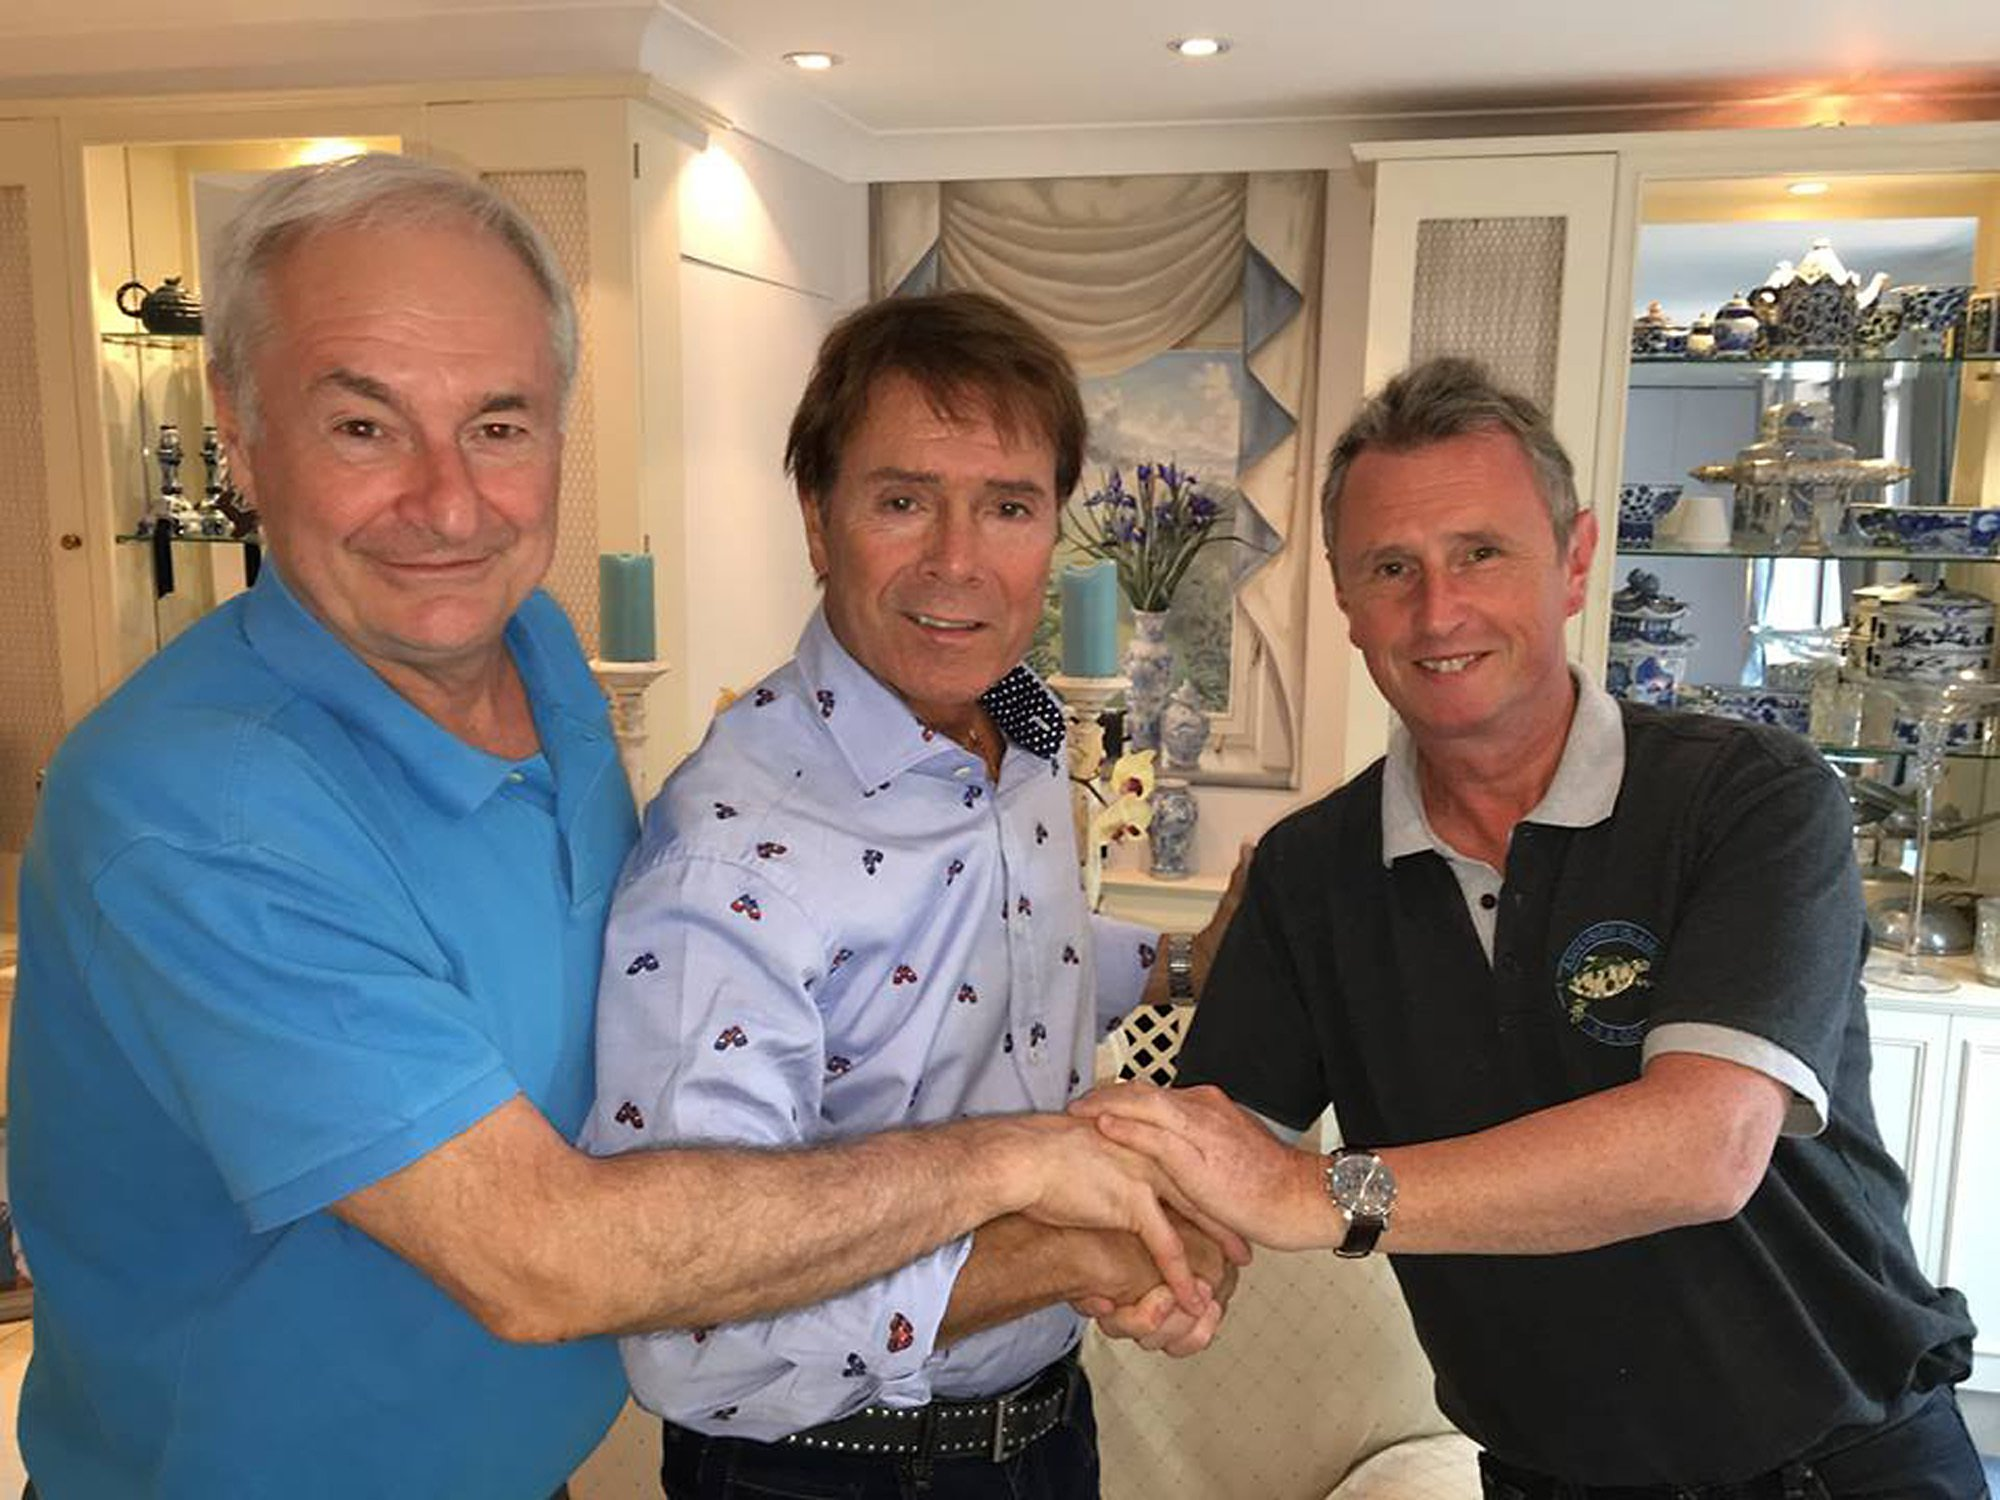 BEST QUALITY AVAILABLE Undated handout photo taken with permission from the Facebook page of Nigel Evans of (left to right) Paul Gambaccini, Sir Cliff Richard and Nigel Evans MP meeting to discuss plans to set up a victims support group for those wrongly accused of sexual assault. PRESS ASSOCIATION Photo. Issue date: Monday July 4, 2016. Conservative MP Mr Evans has joined forces with Sir Cliff Richard in a bid to change the law to protect the anonymity of those accused of sexual assault and rape. See PA story POLITICS Evans. Photo credit should read: Nigel Evans/PA Wire NOTE TO EDITORS: This handout photo may only be used in for editorial reporting purposes for the contemporaneous illustration of events, things or the people in the image or facts mentioned in the caption. Reuse of the picture may require further permission from the copyright holder.